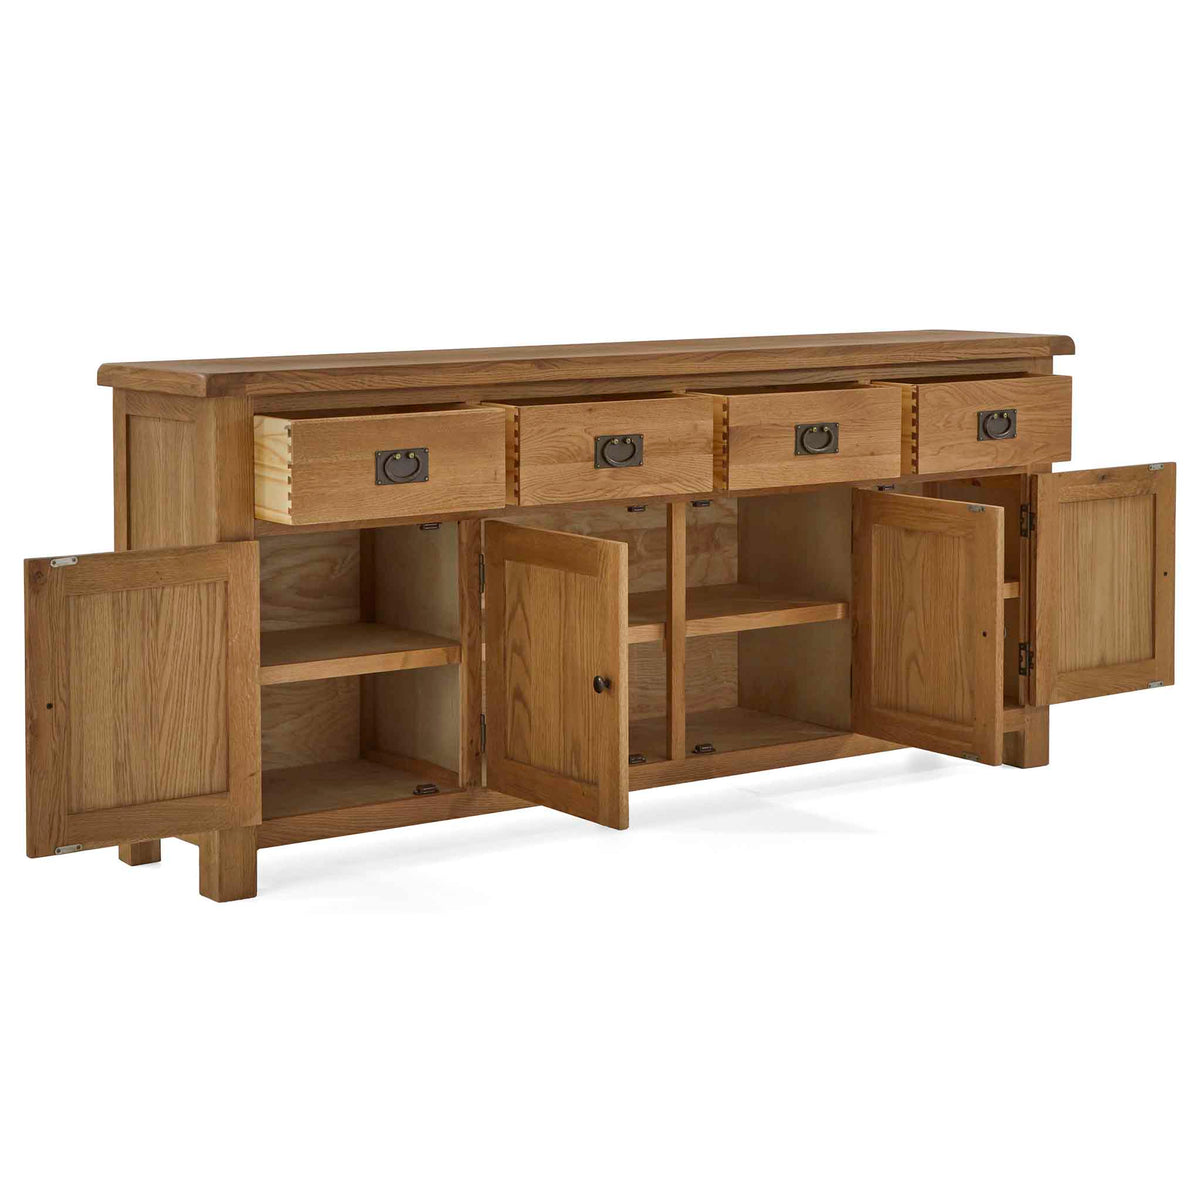 Zelah Oak Extra Large Sideboard - With cupboards and drawers open